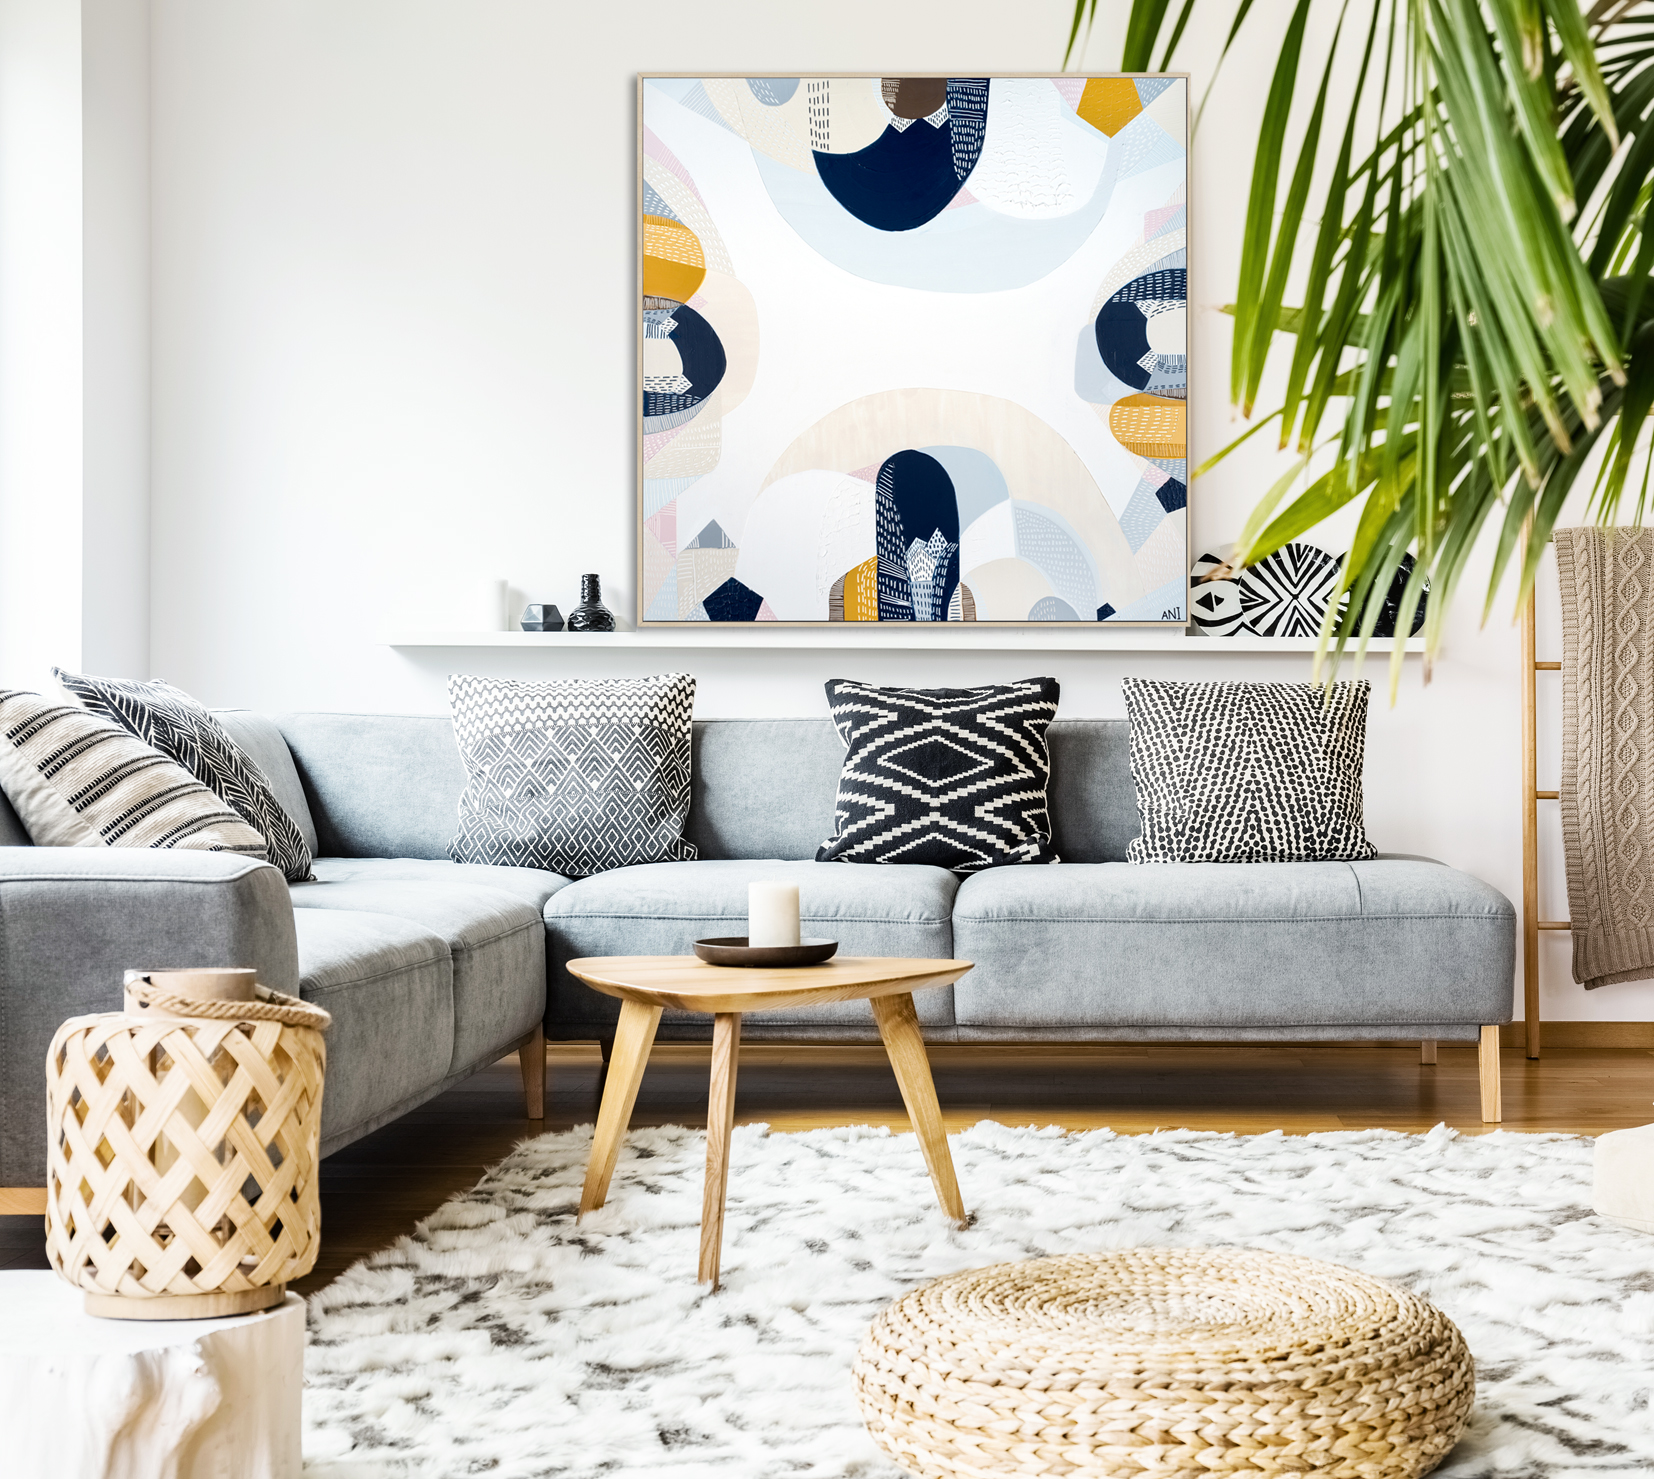 Pouf And Wooden Table In Modern Living Room With Painting Above